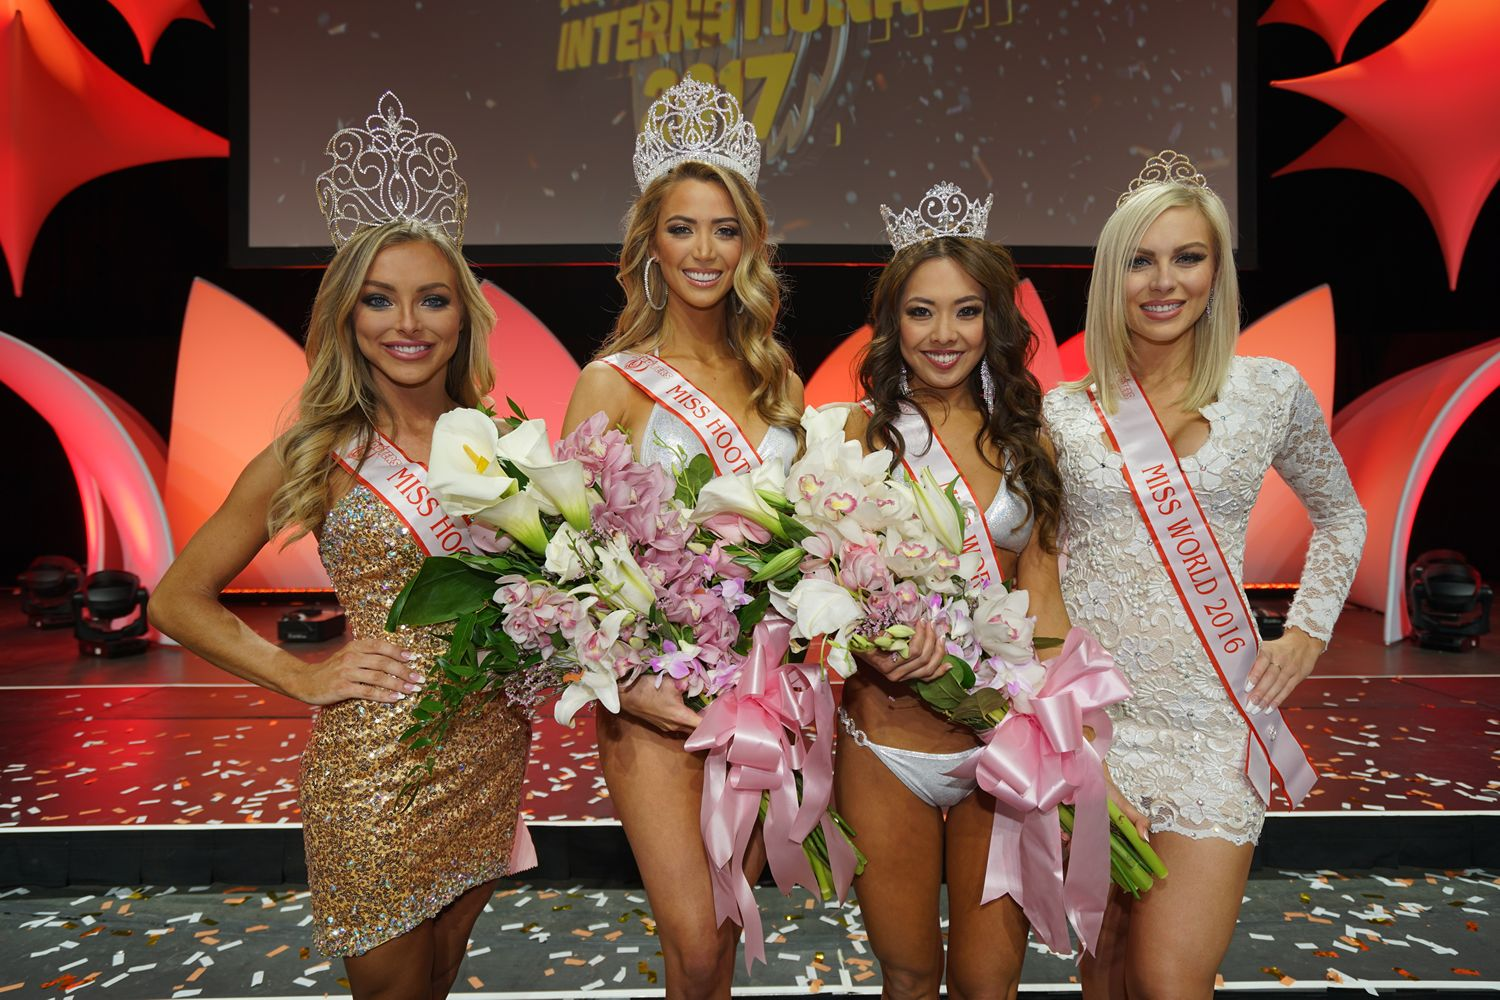 Chelsea Morgensen Crowned 2017 Miss Hooters International